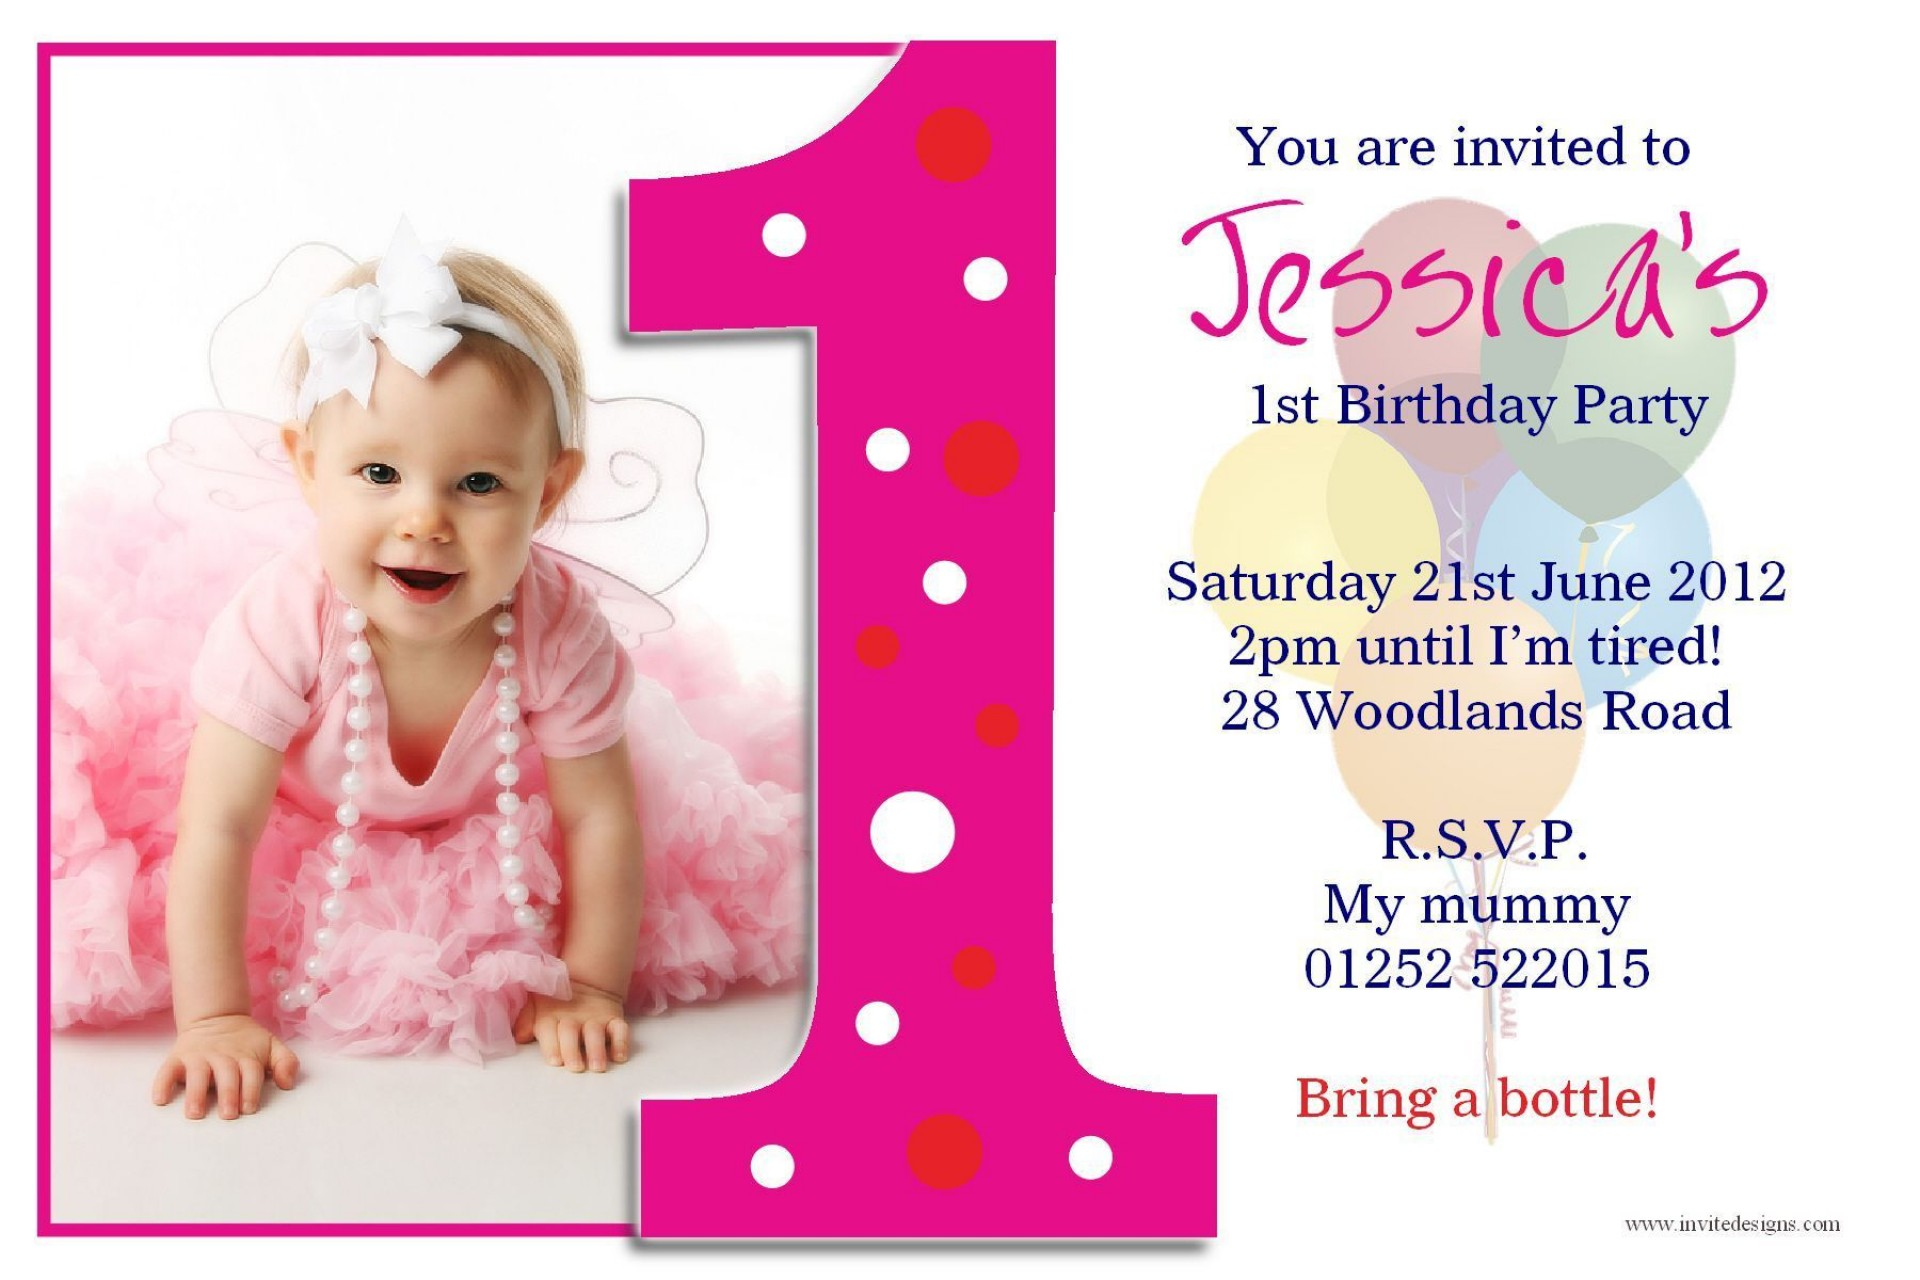 007 Beautiful Birthday Invitation Wording Sample 5 Year Old Picture 1920